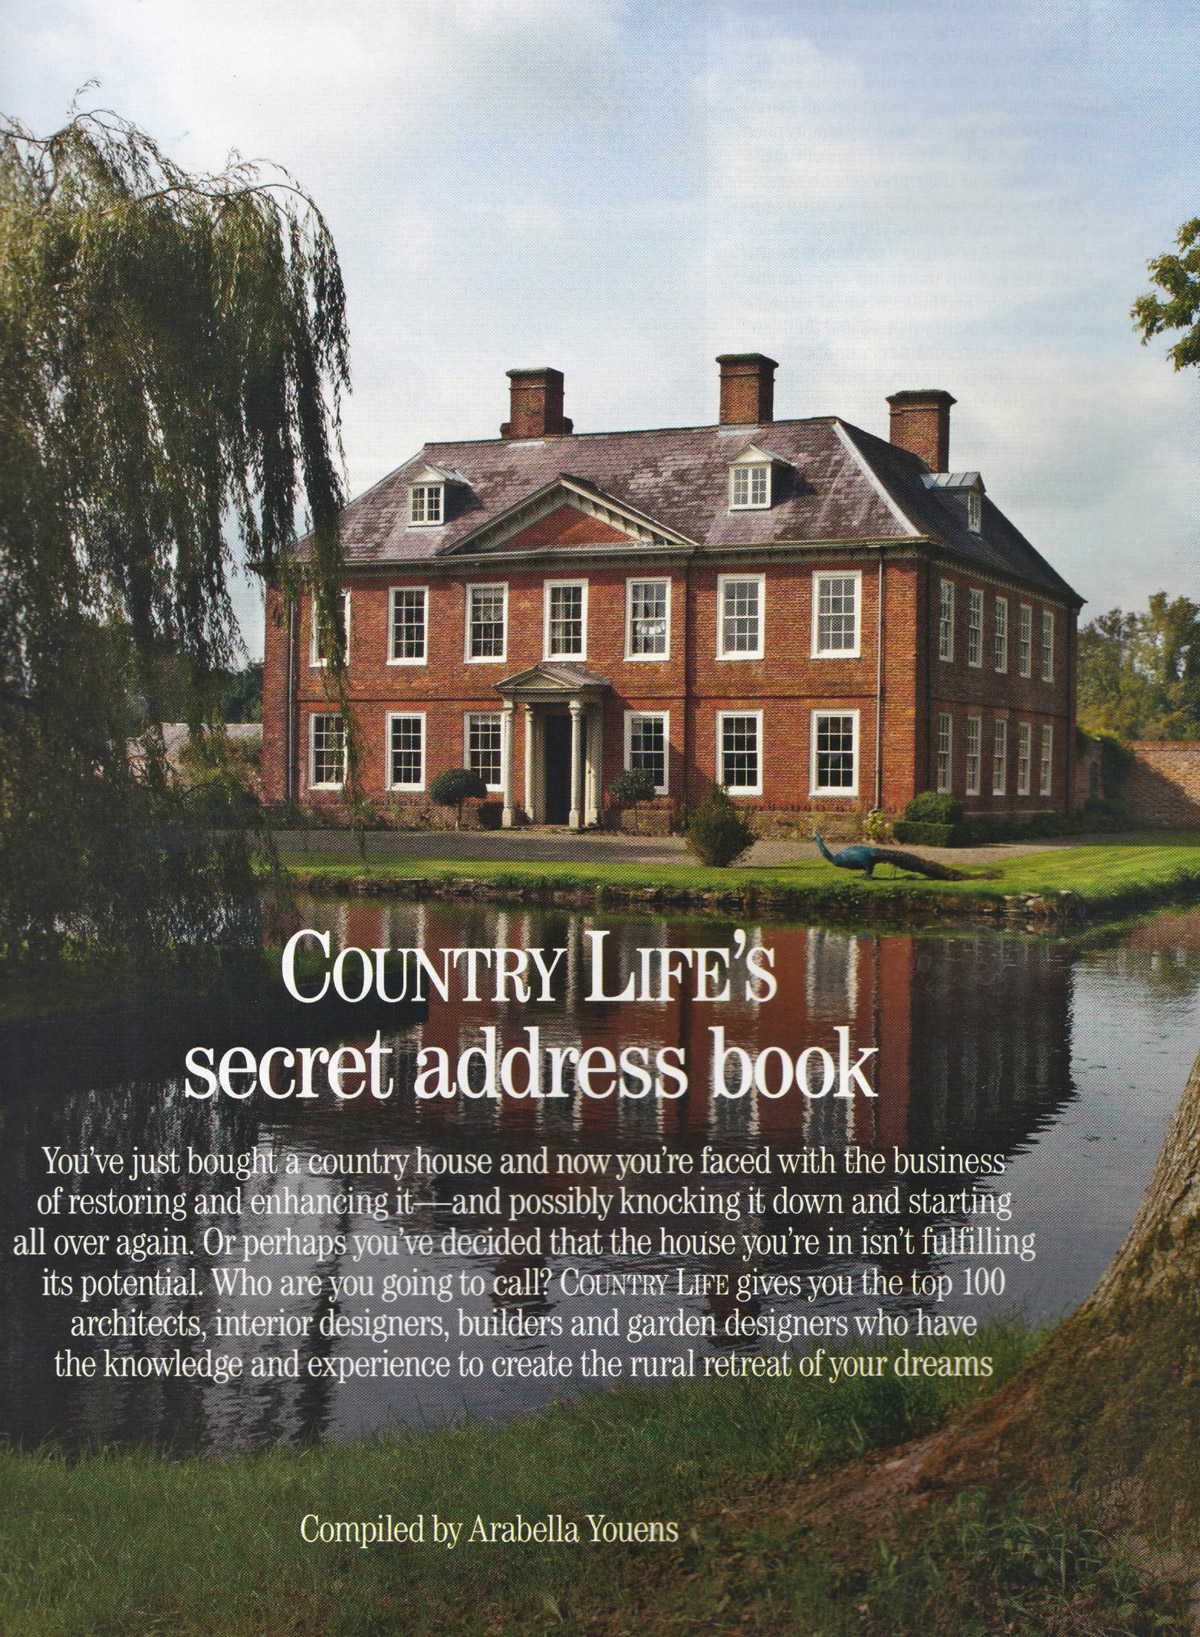 Lucy Elworthy Iterior Design Country Life 2